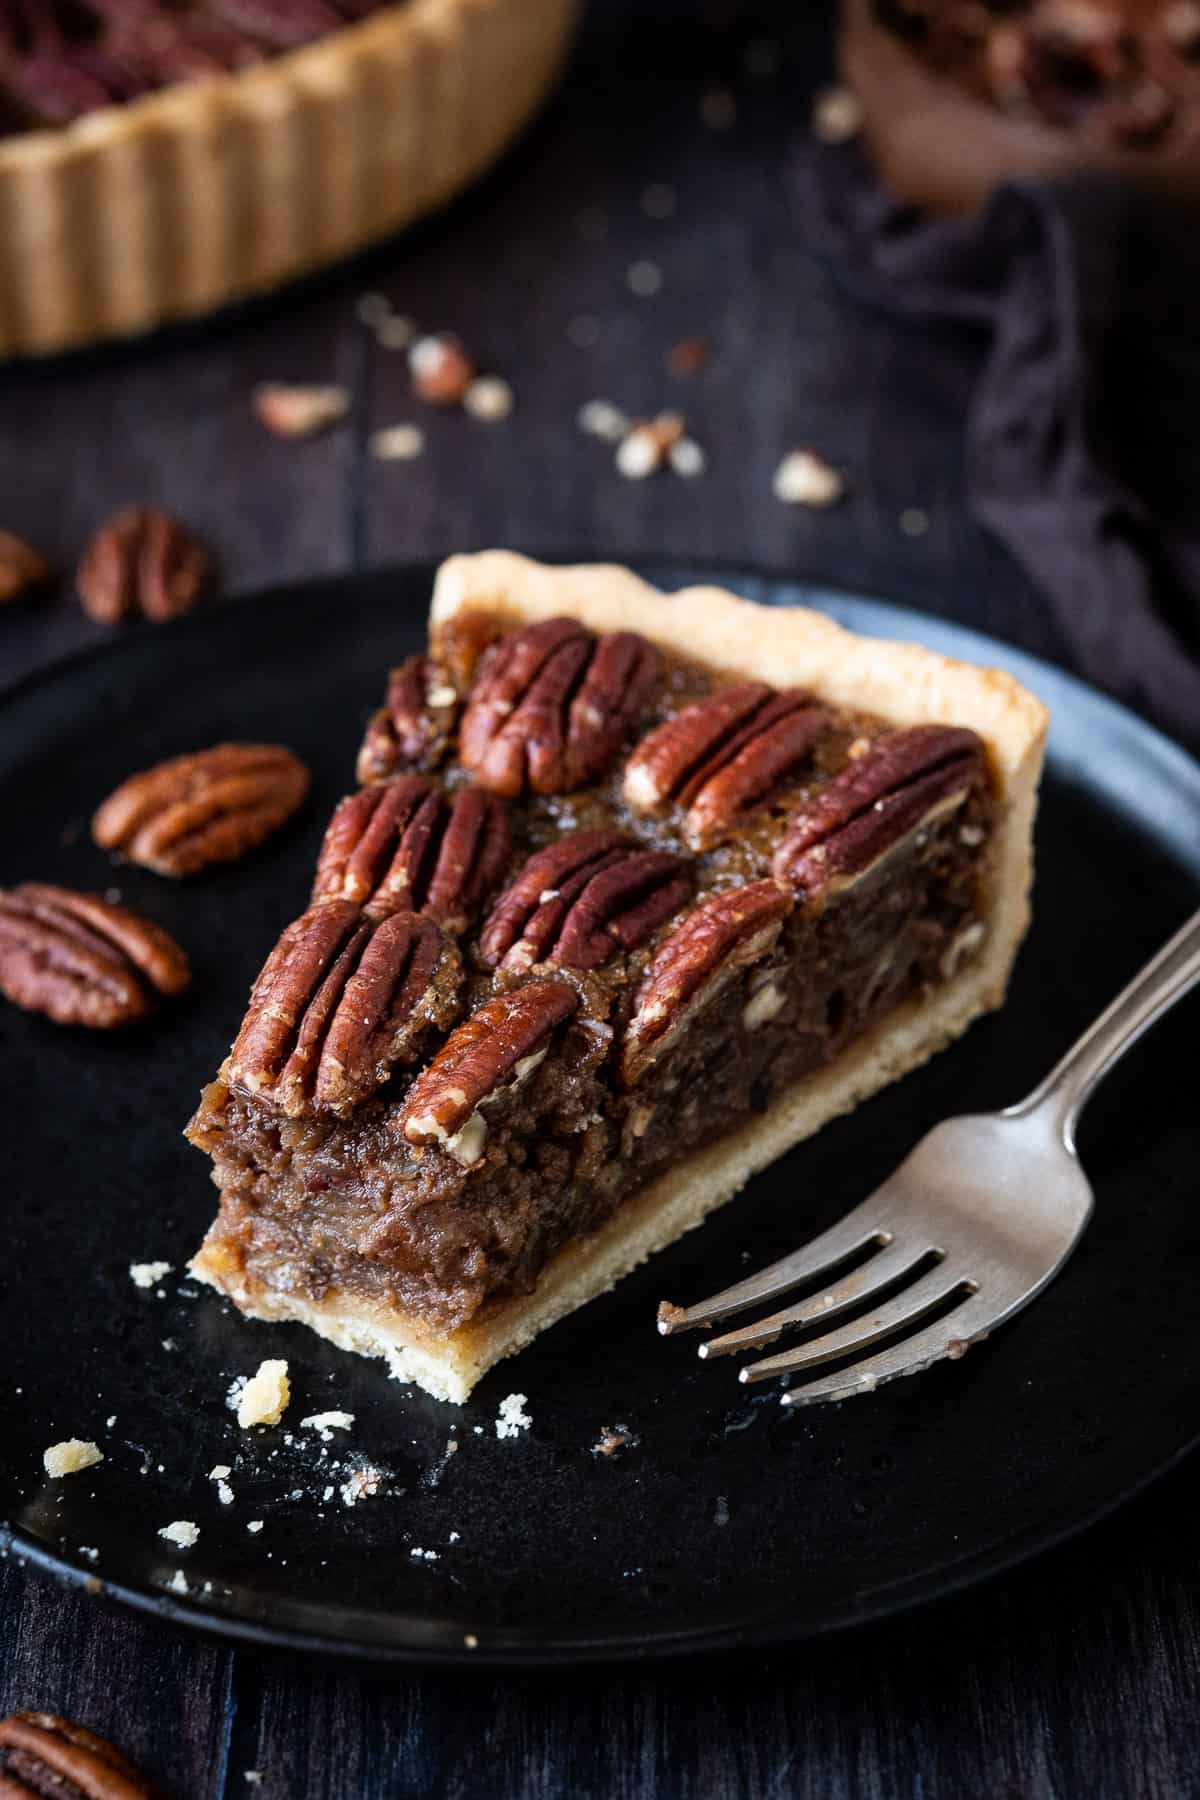 Close up of a slice of vegan pecan pie on a black plate with a forkful removed.